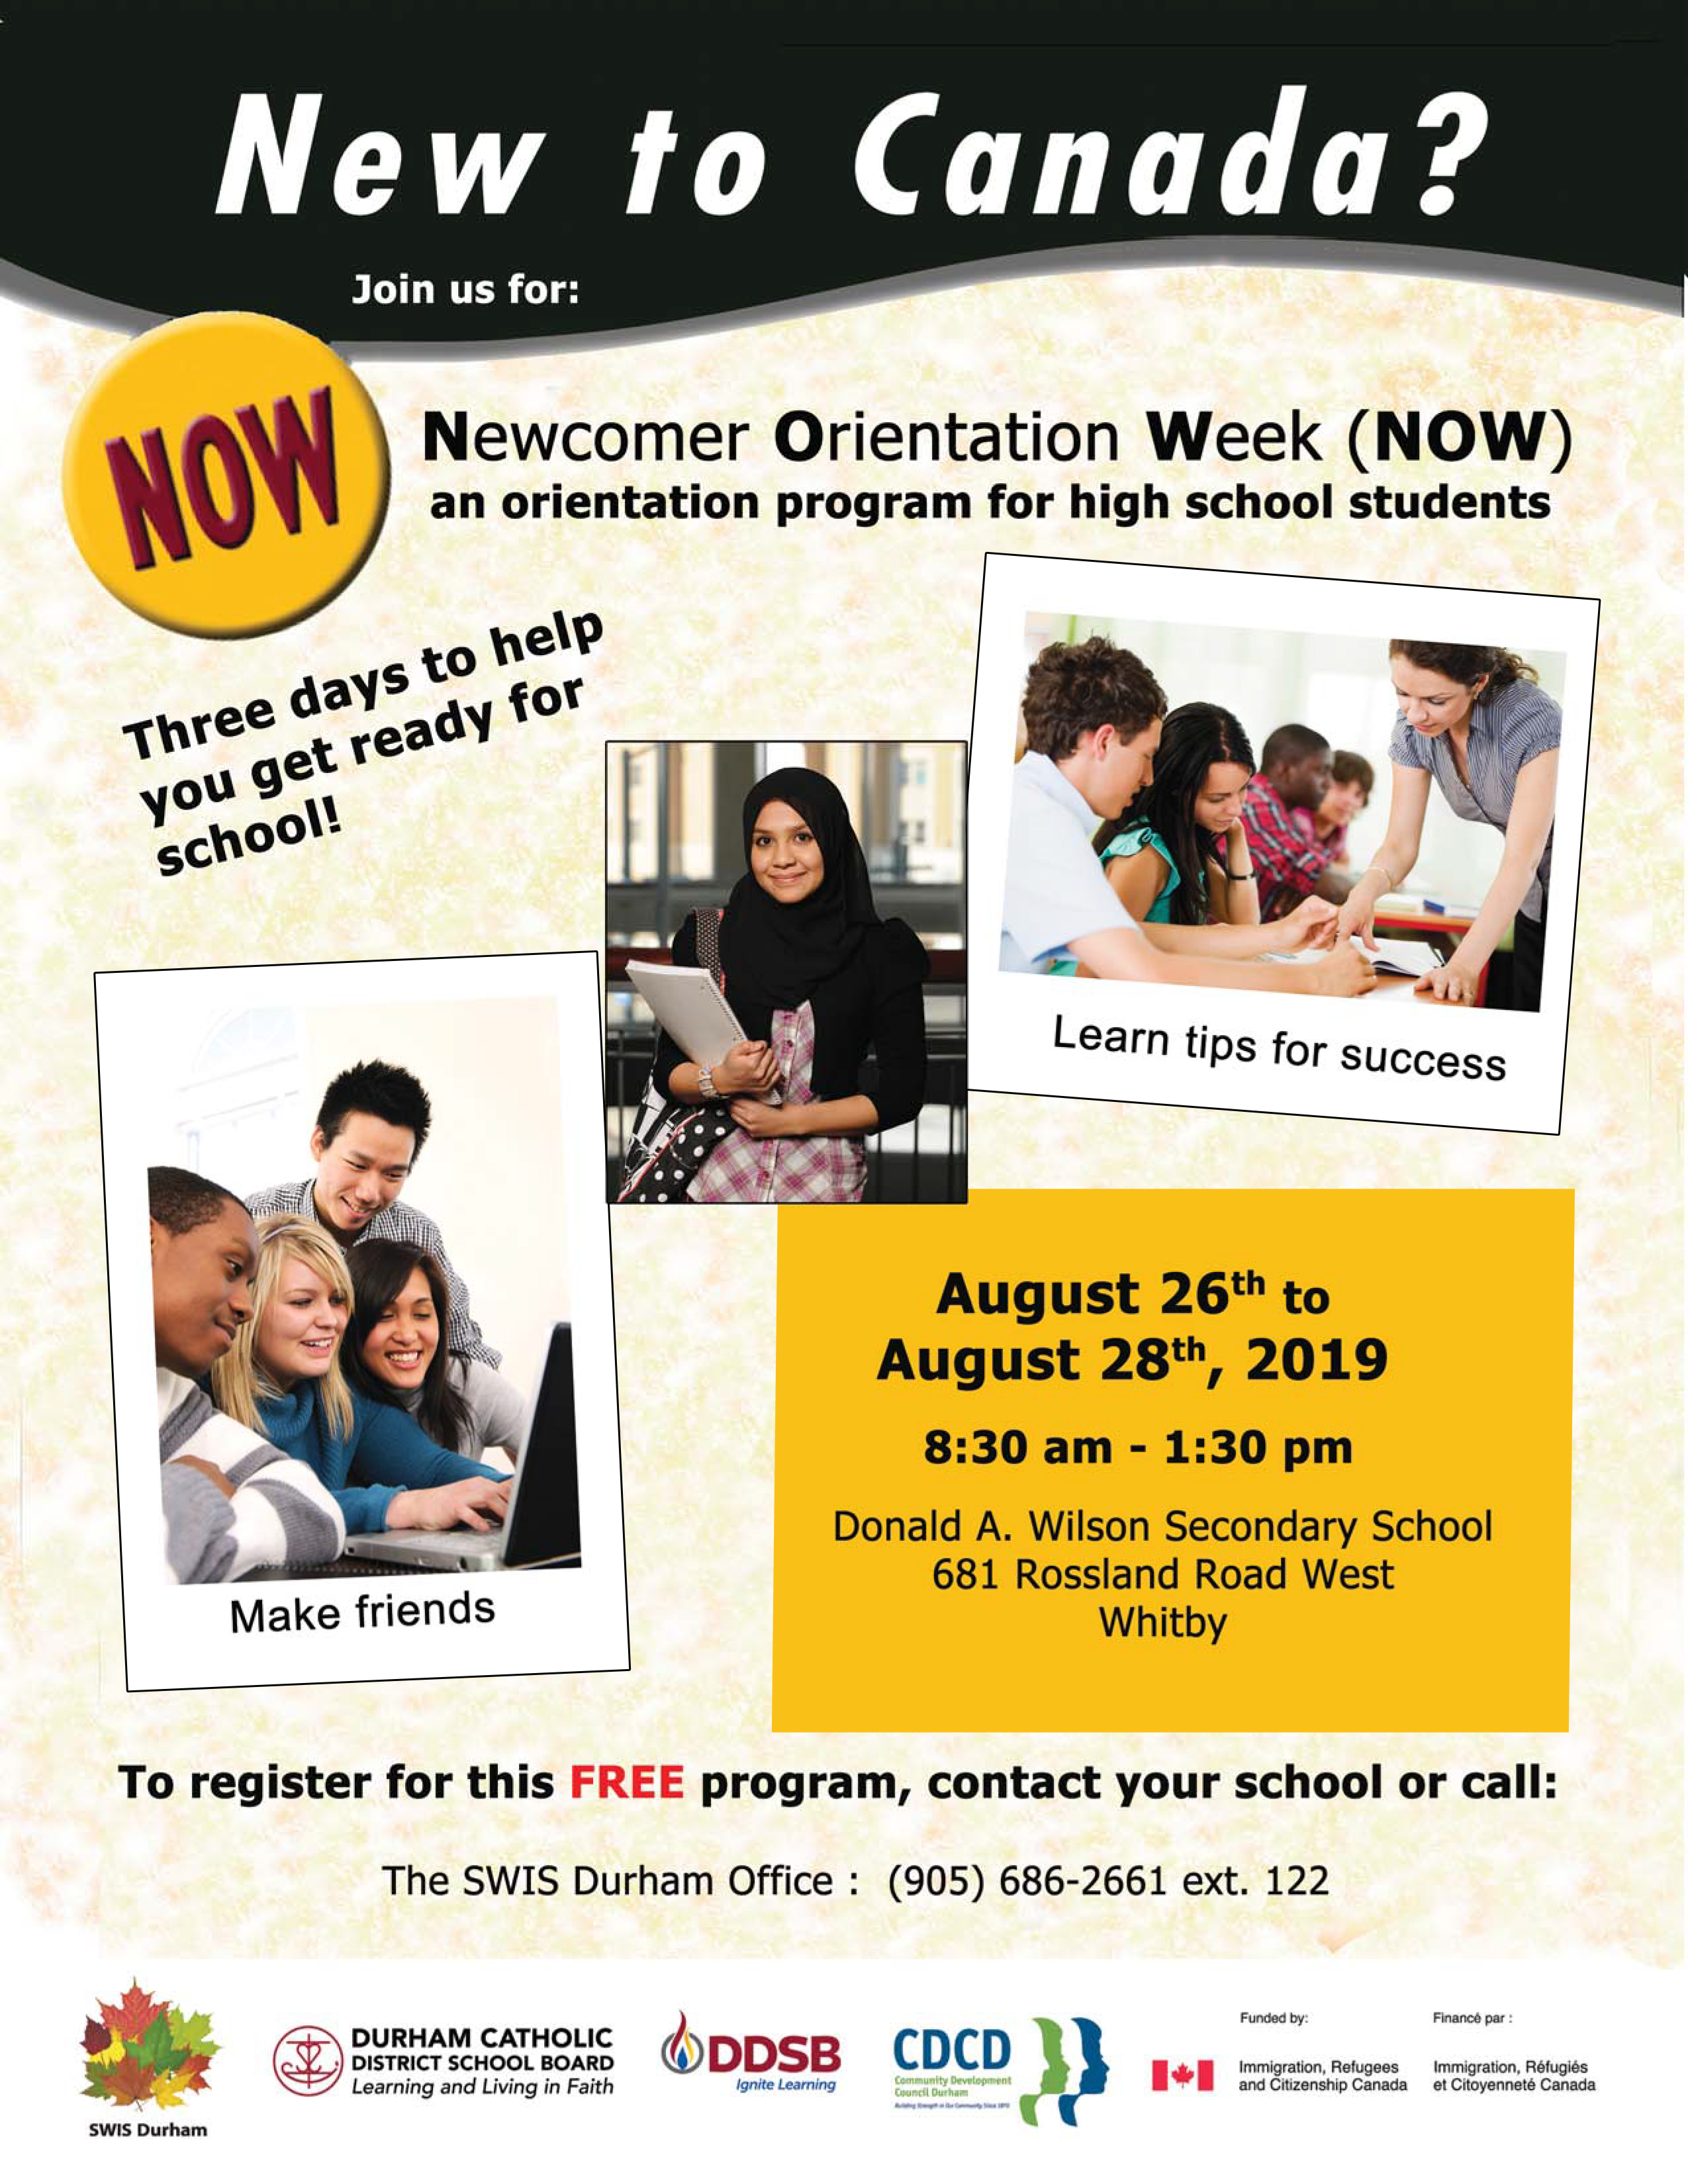 flyer promoting the Newcomers to Canada program